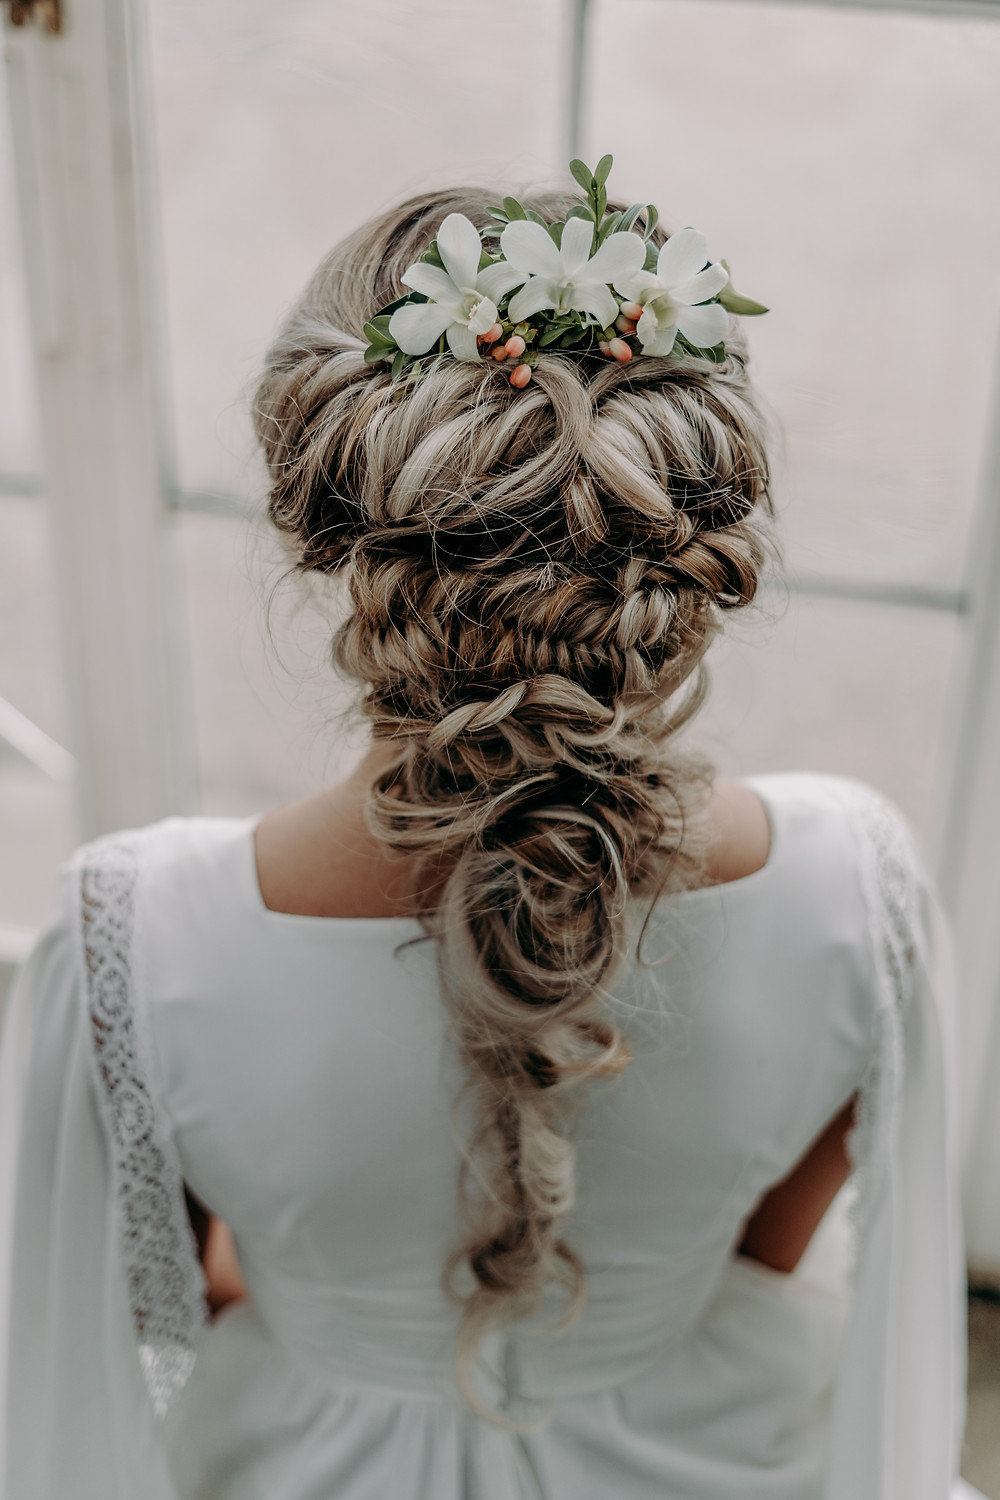 Whimsical, Braided, Textured Wedding Hairstyle, Mazz Loxton, Hair and Makeup Artistry, Sheffield